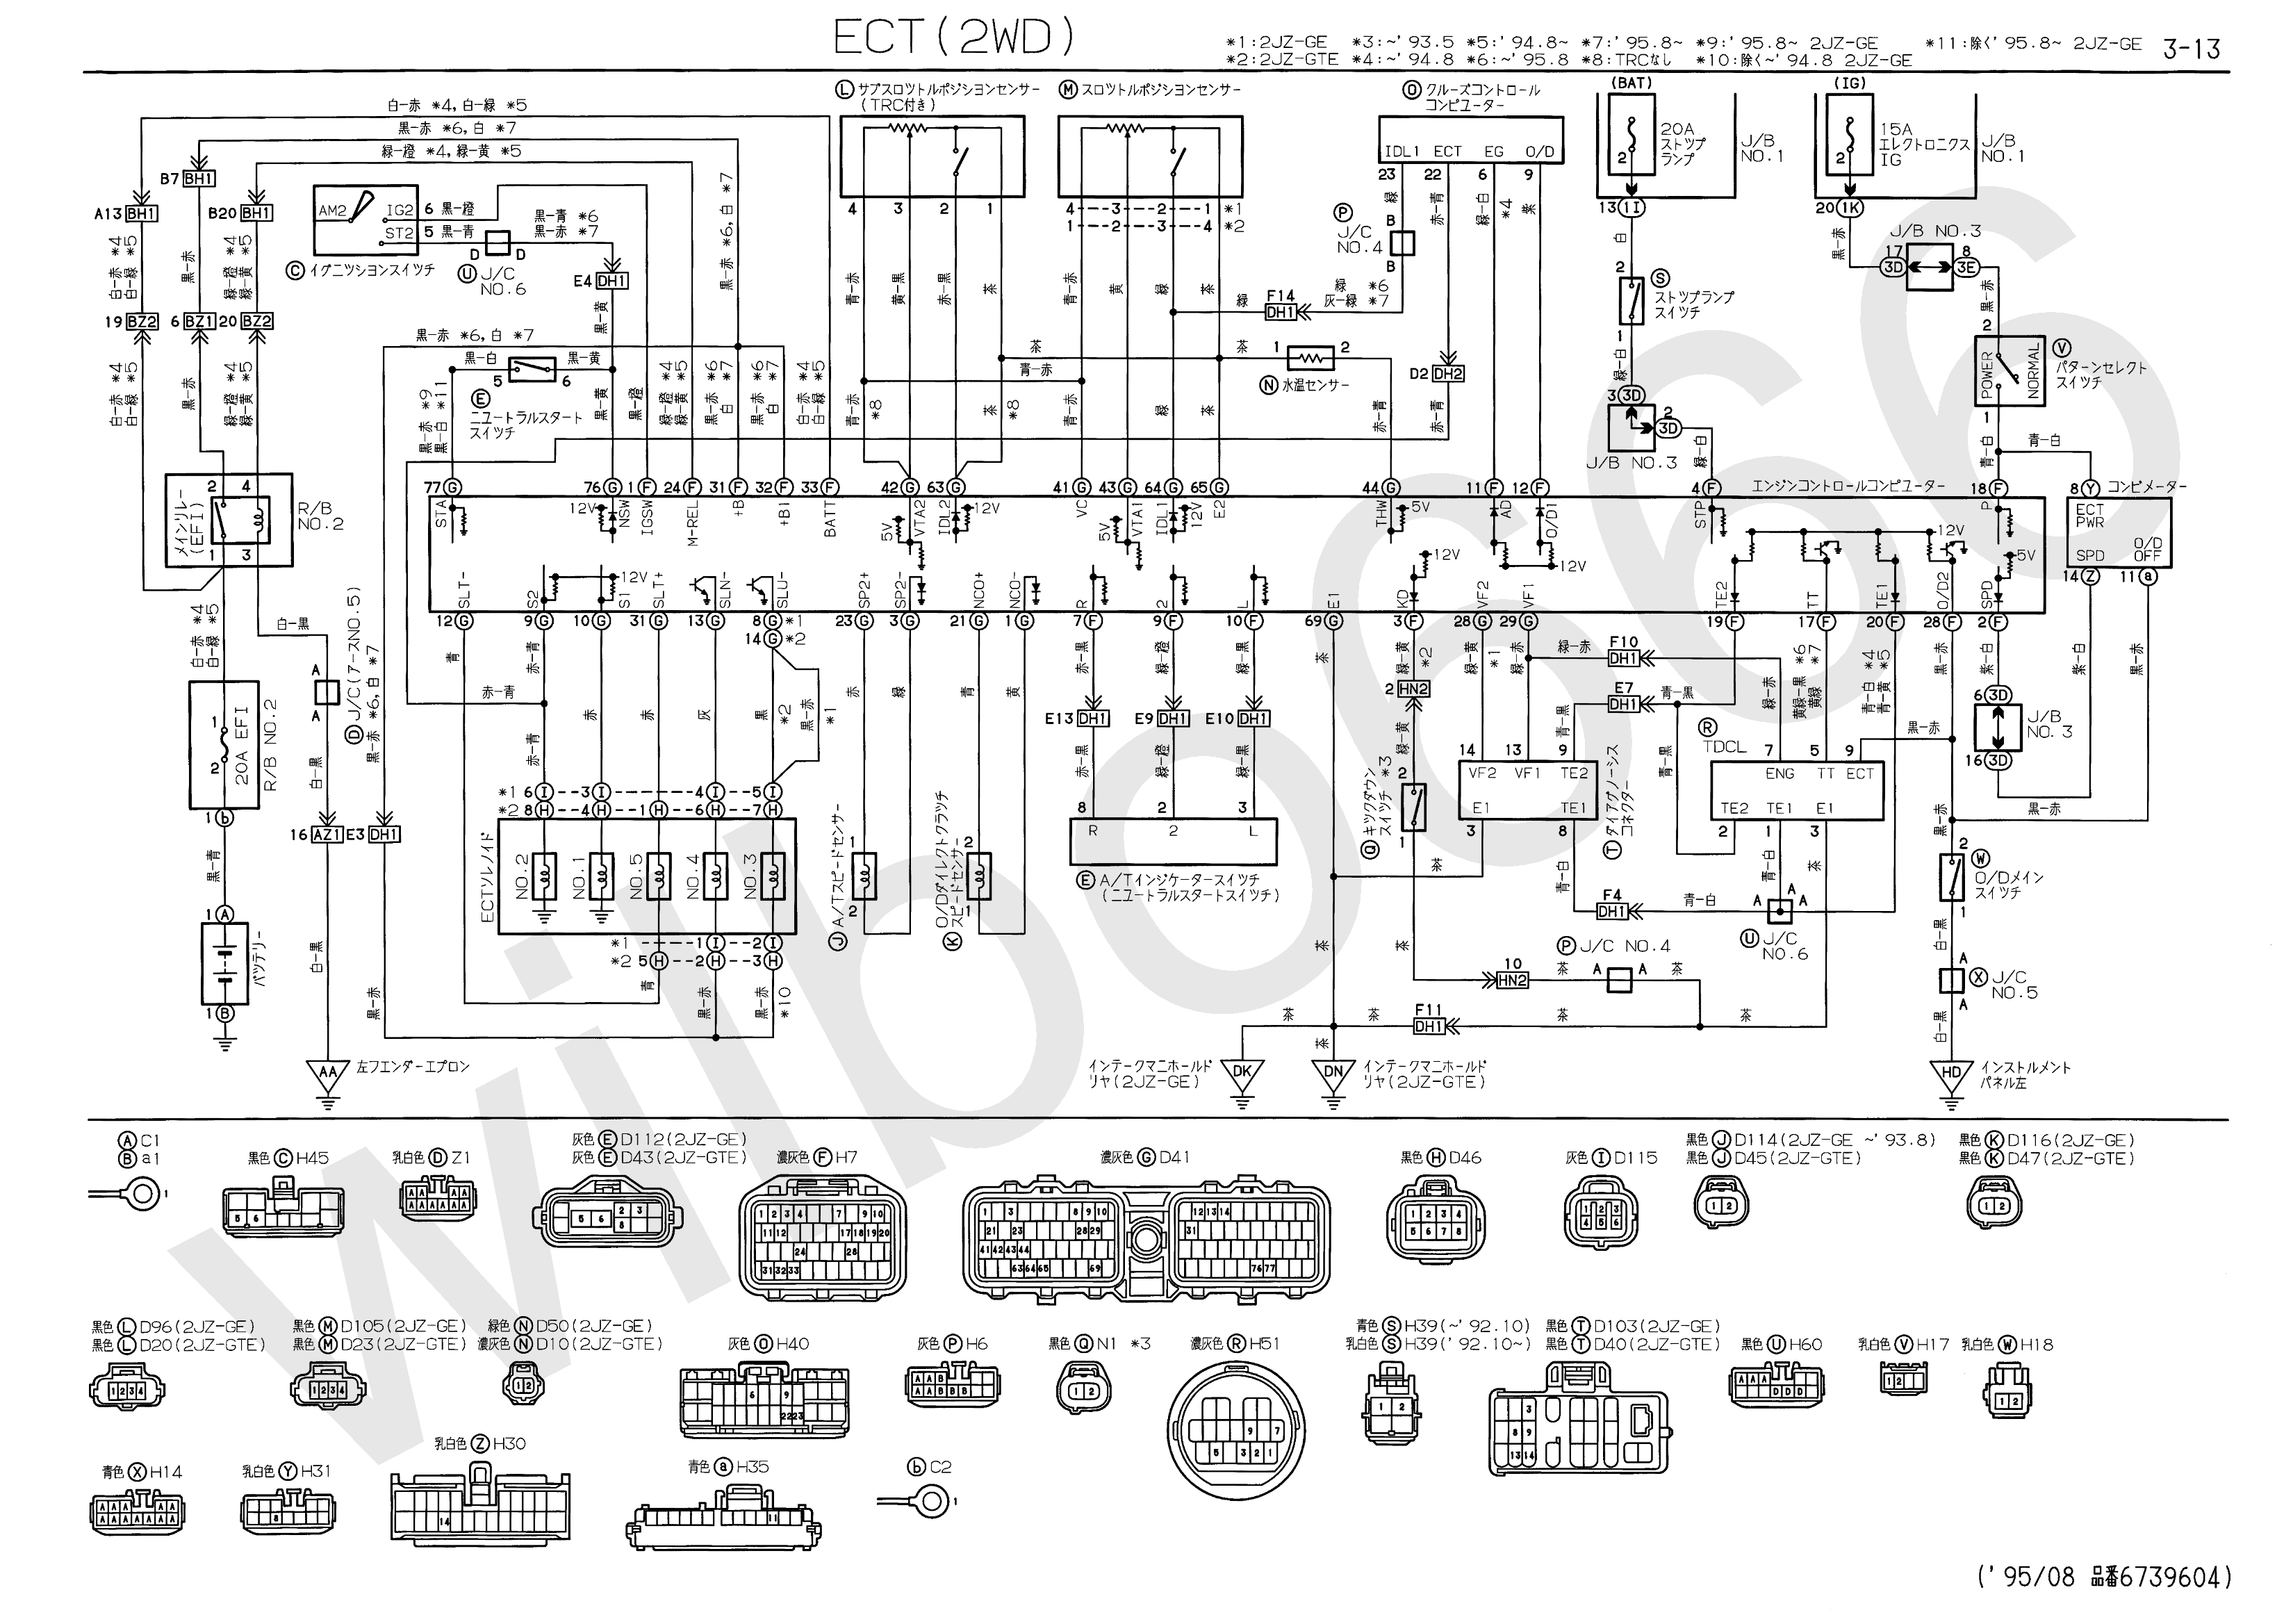 JZS14%23%2C+UZS14%23+Electrical+Wiring+Diagram+6739604+3 13 toyota aurion wiring diagram manual wiring diagram simonand 1999 toyota camry fuse box at creativeand.co